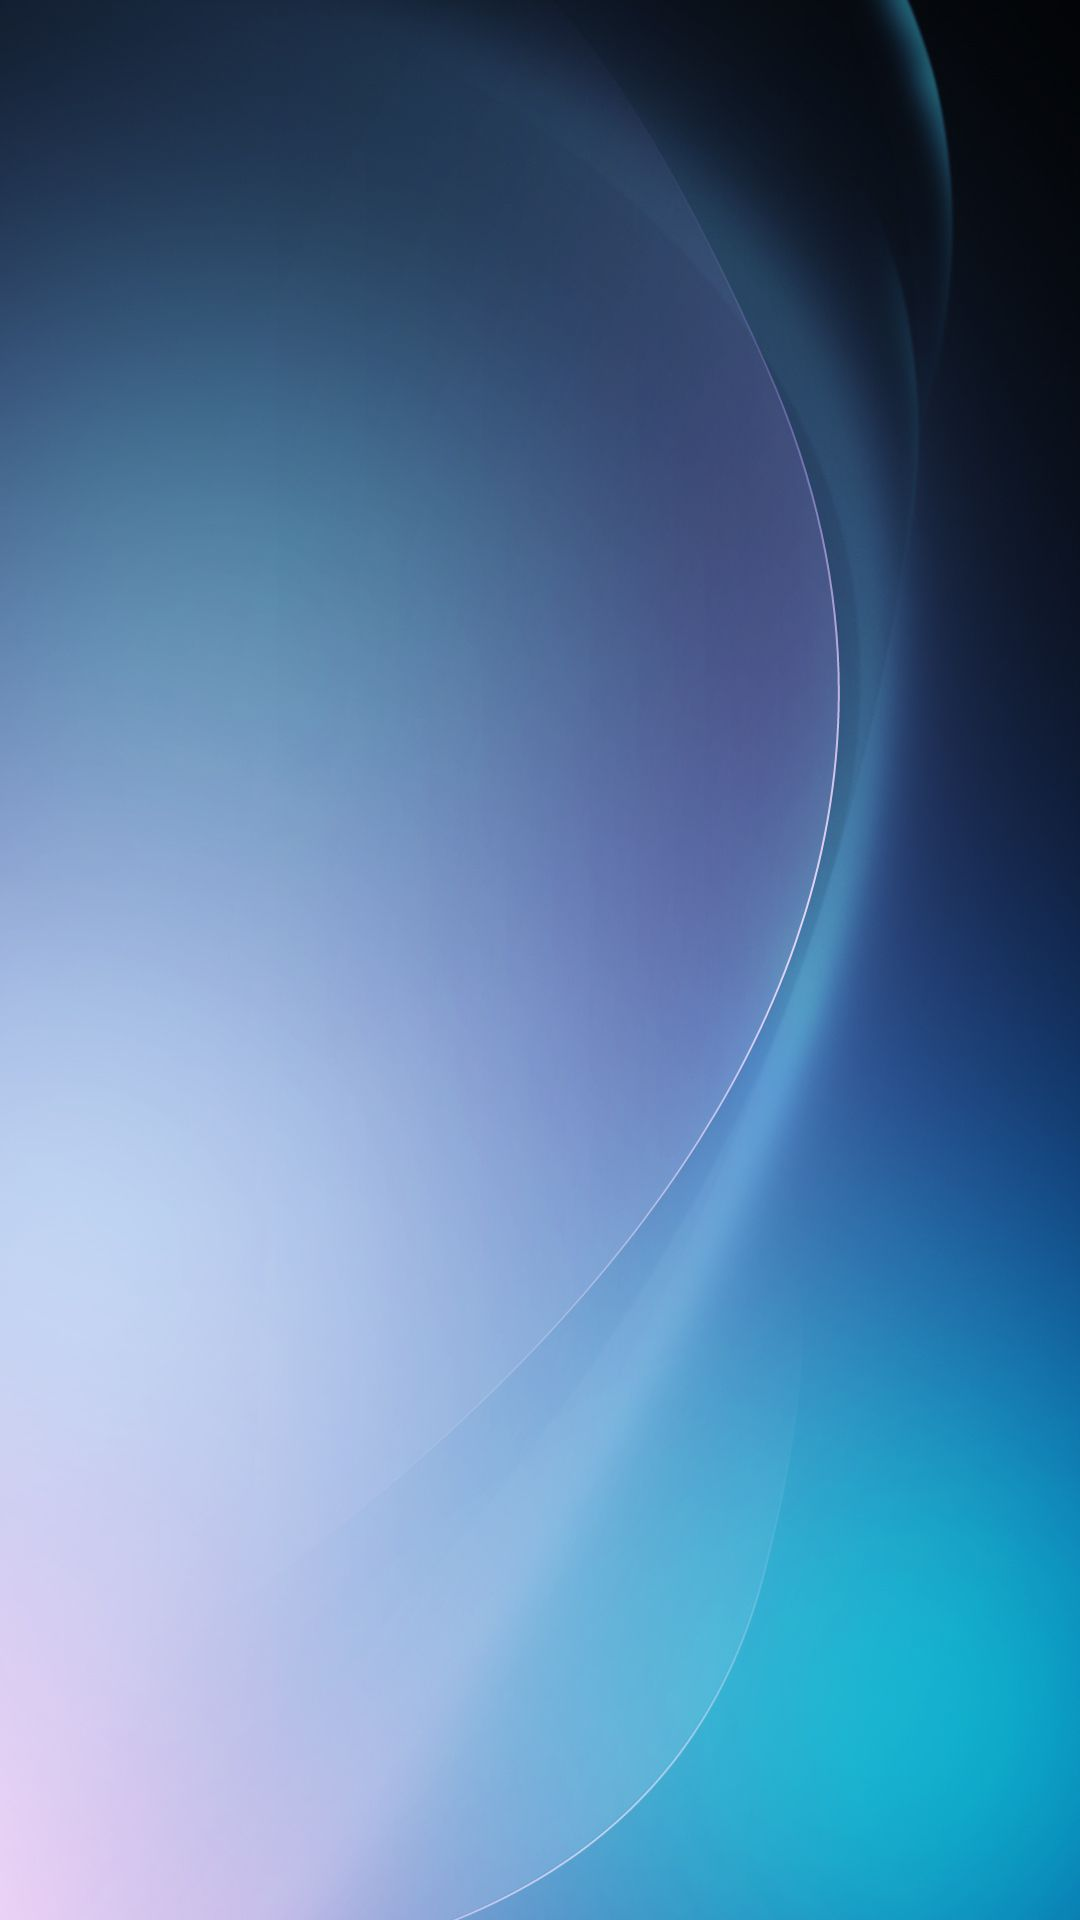 30 Most Popular Iphone 6 Abstract Wallpaper Abstract Wallpaper Abstract Samsung Wallpaper